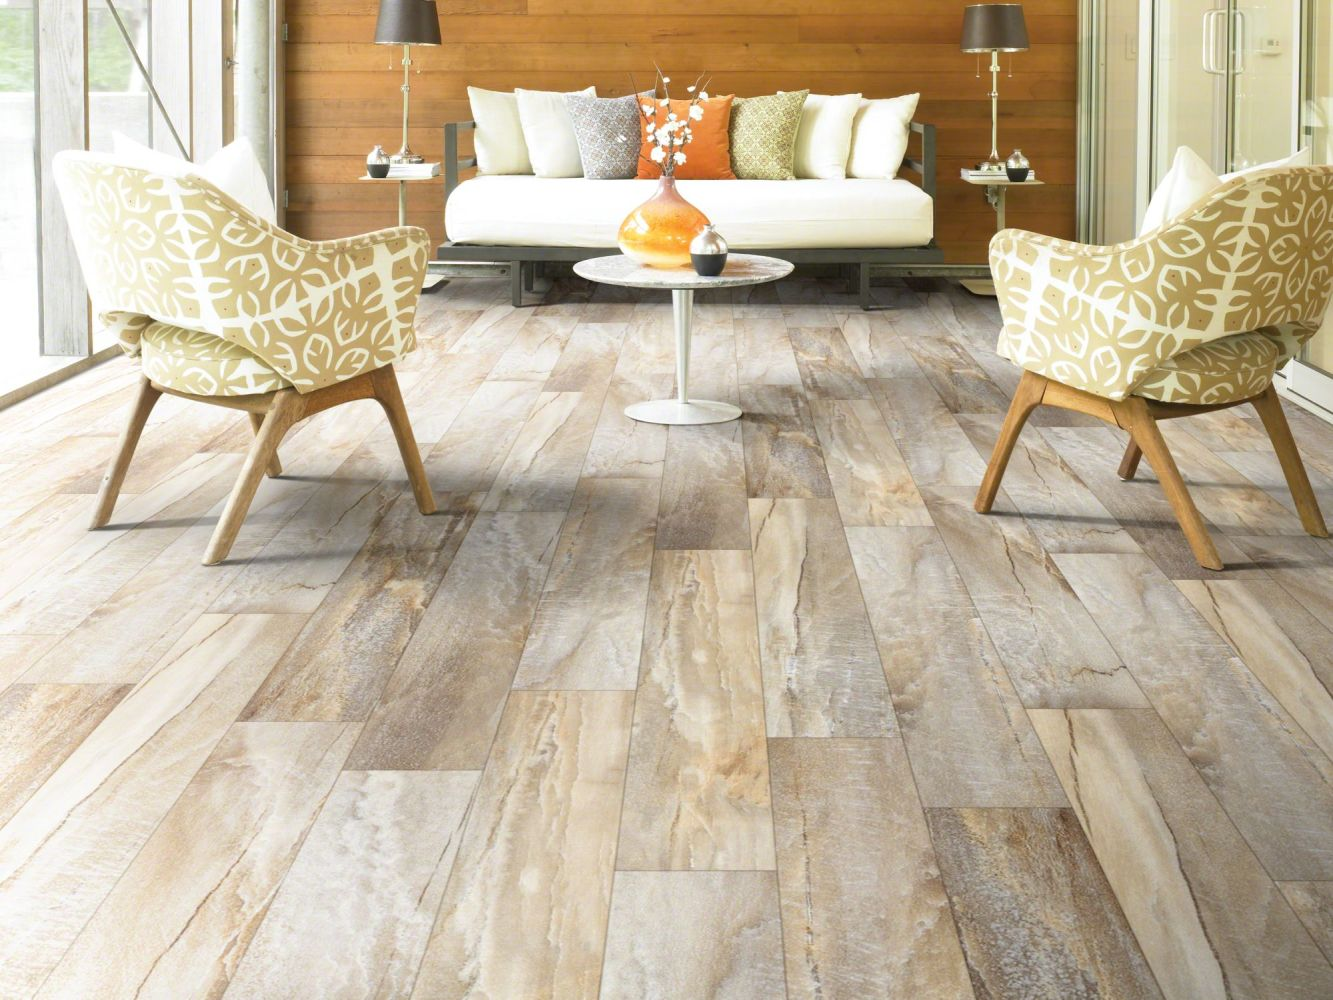 Shaw Floors Nfa Premier Gallery Resilient Amherst Ginger 00605_VH530